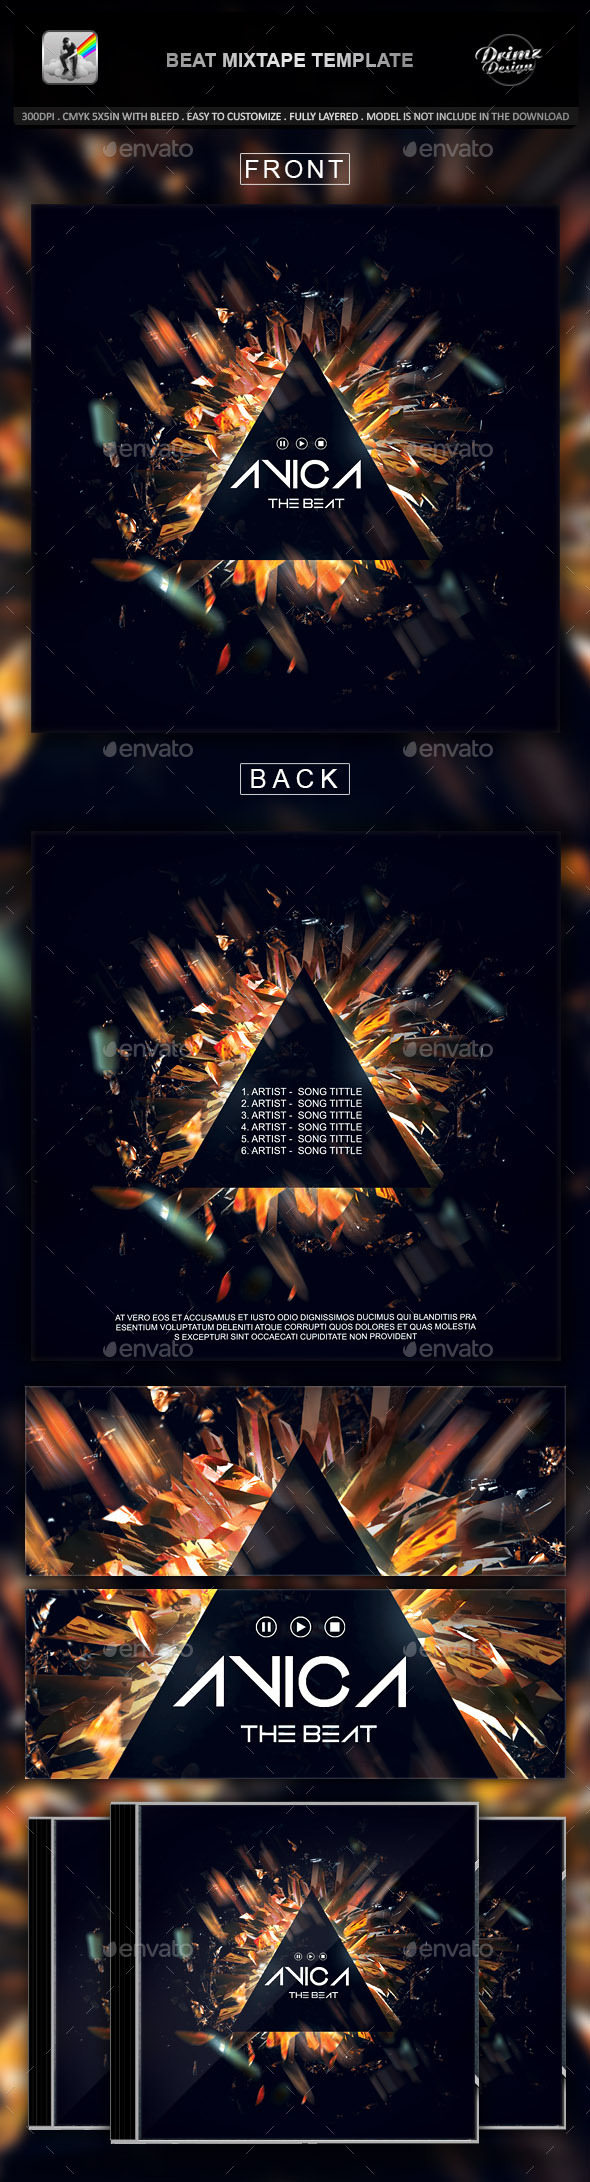 GraphicRiver Beat Mixtape Template 10599660